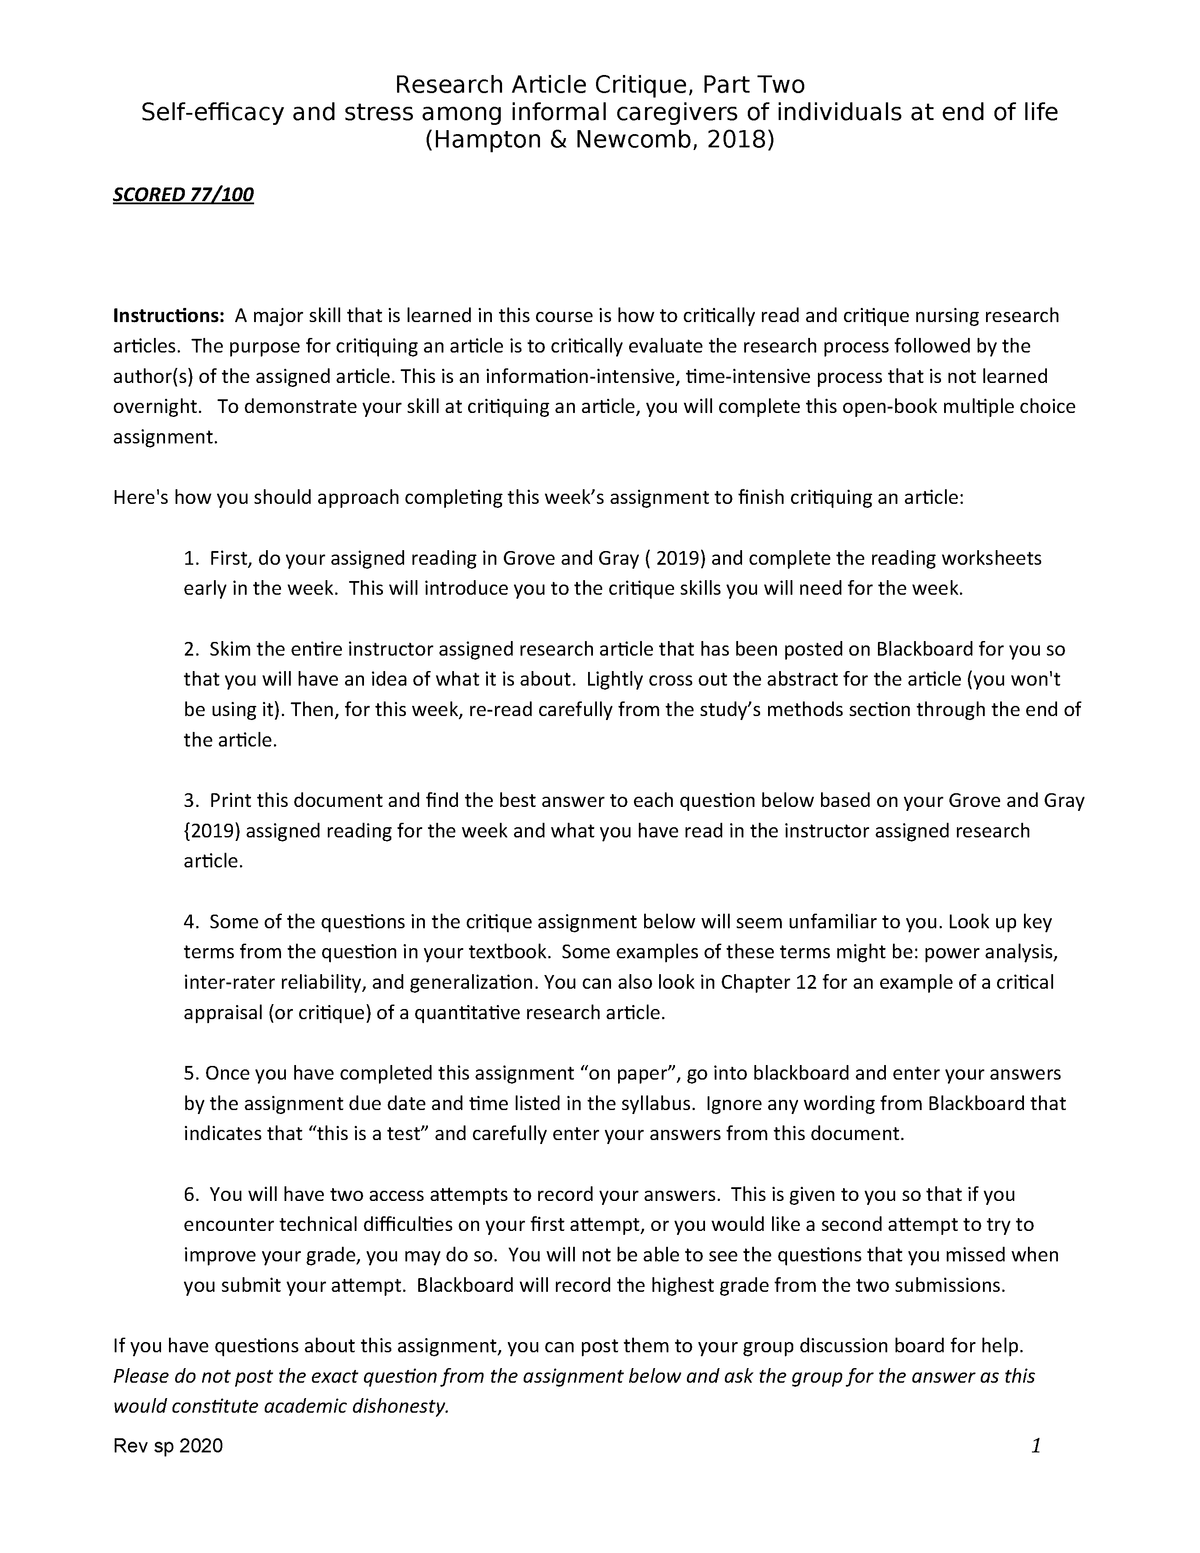 Accounting assistant resume sample